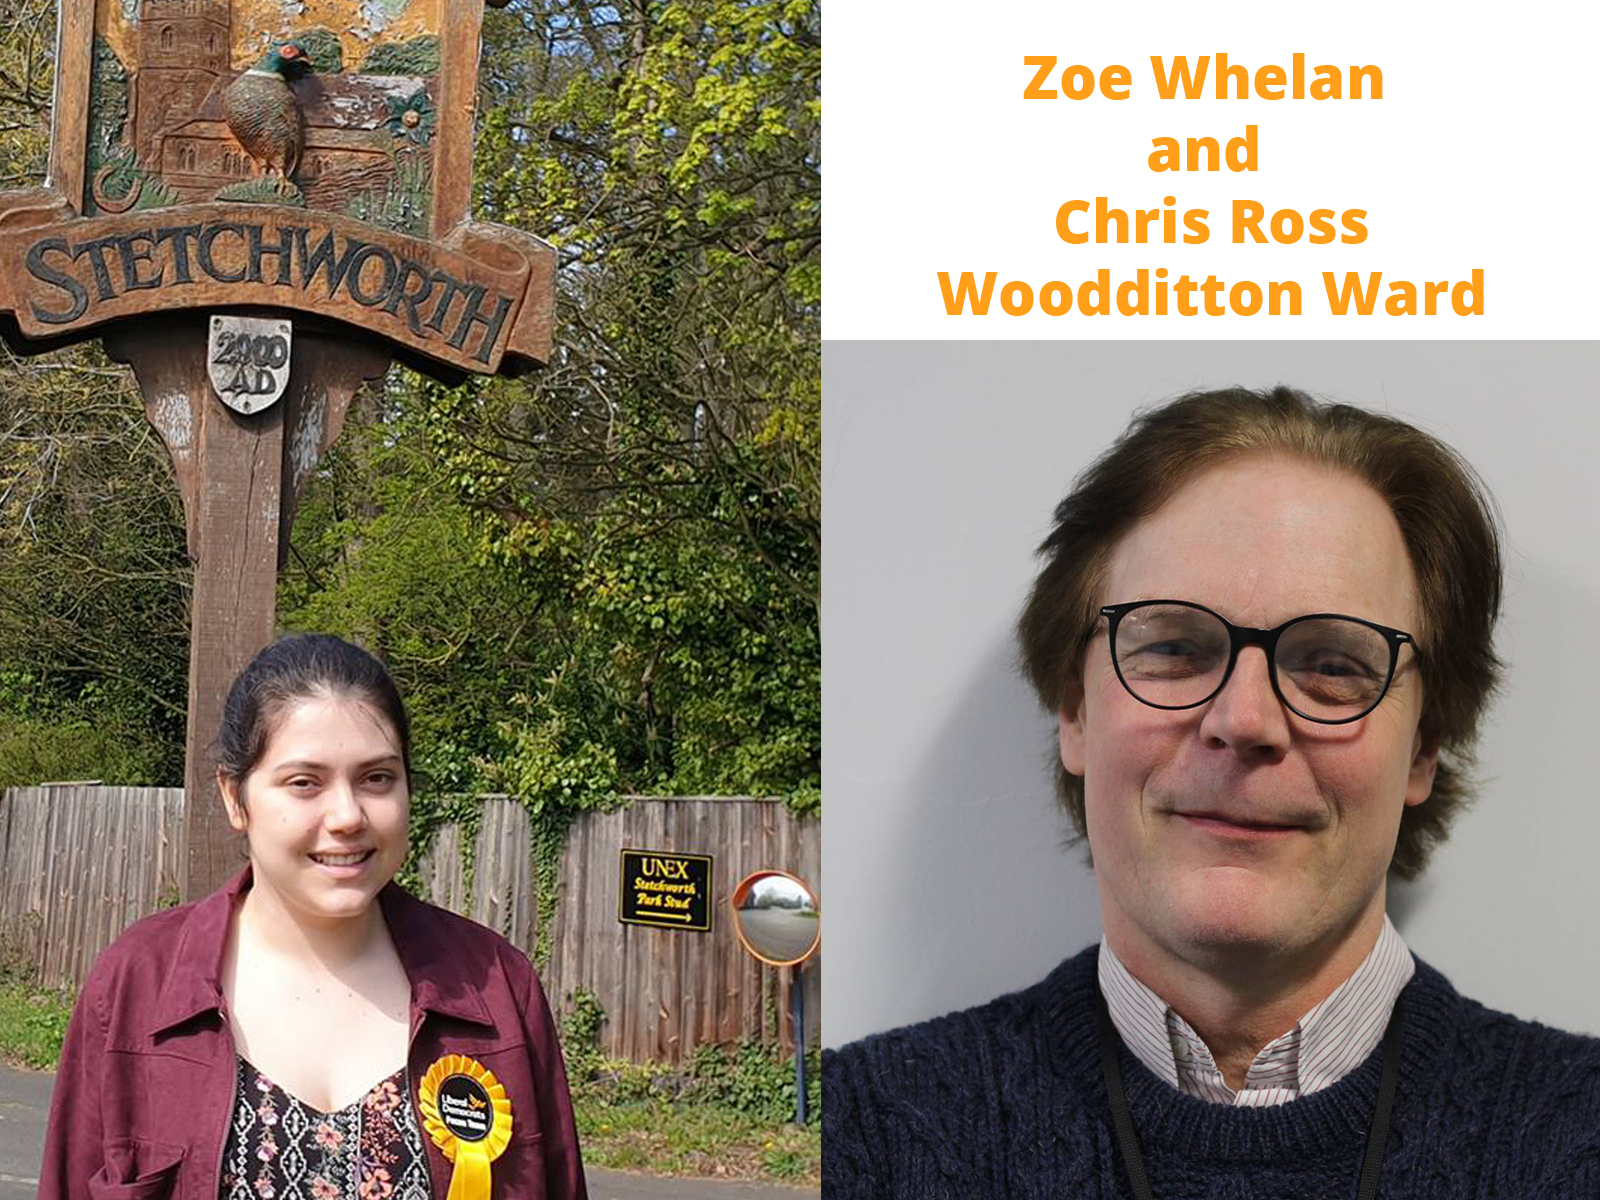 Chris Ross and Zoe Whelan - Lib Dem Candidates for Woodditton